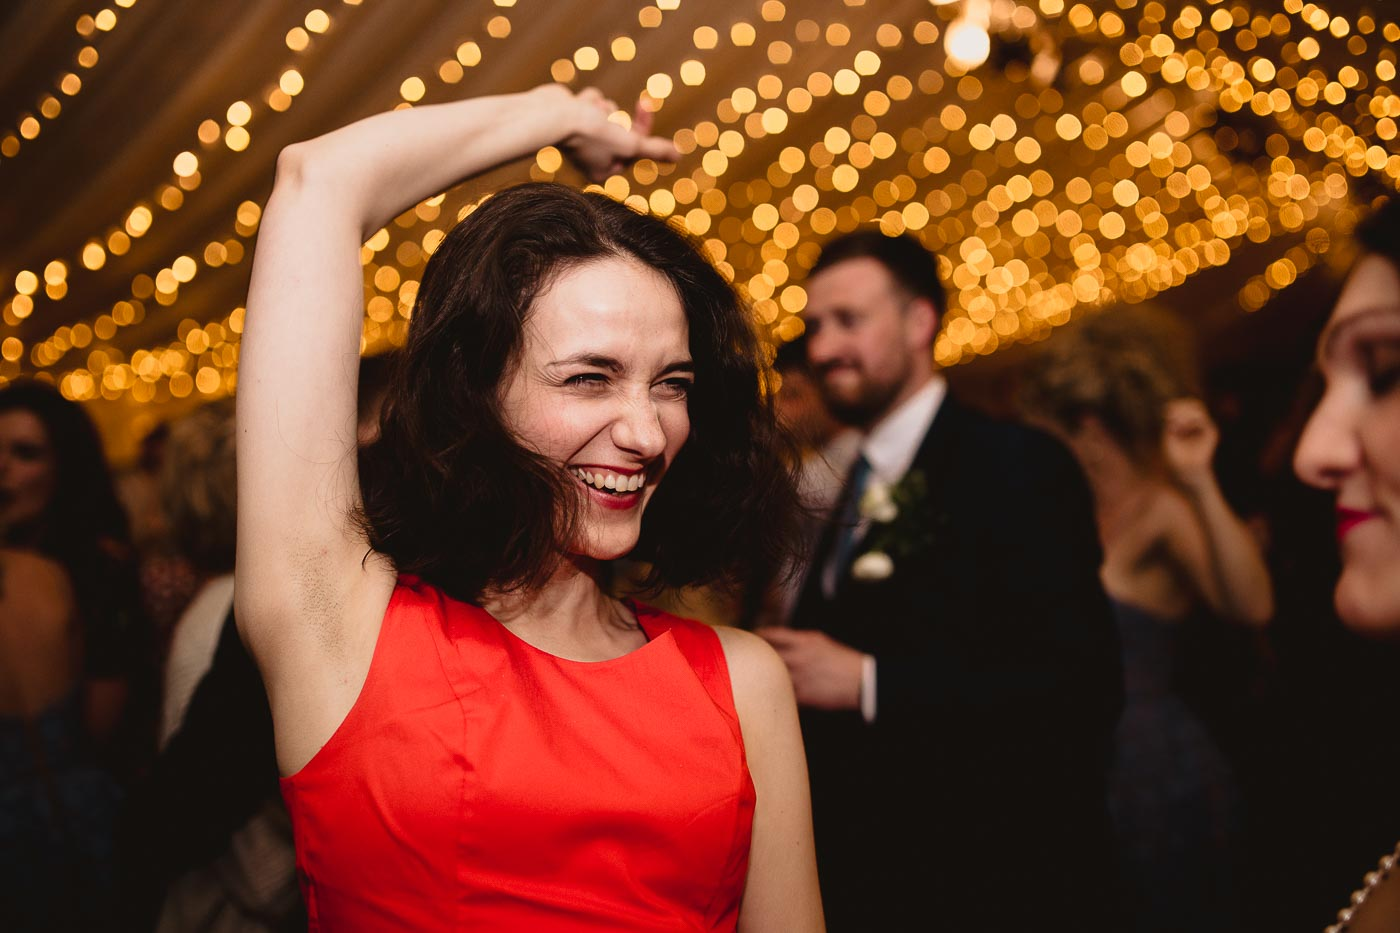 candid photograph of guest dancing wearing red dress